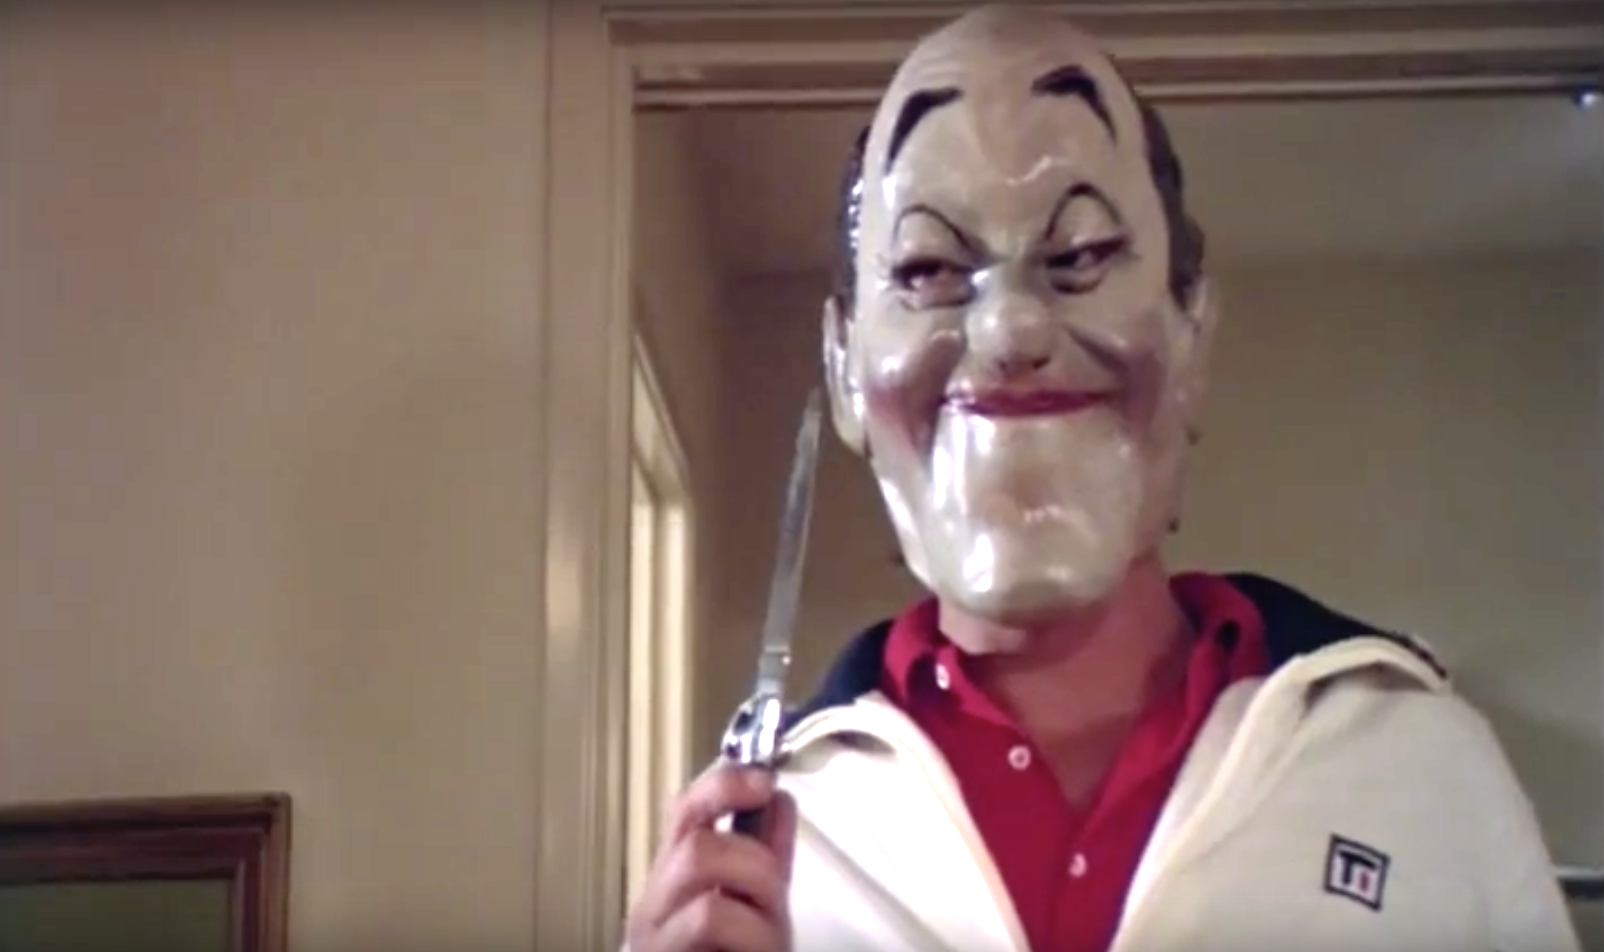 7 awesomely bad horror movies to watch before you die in a way that looks really fake.